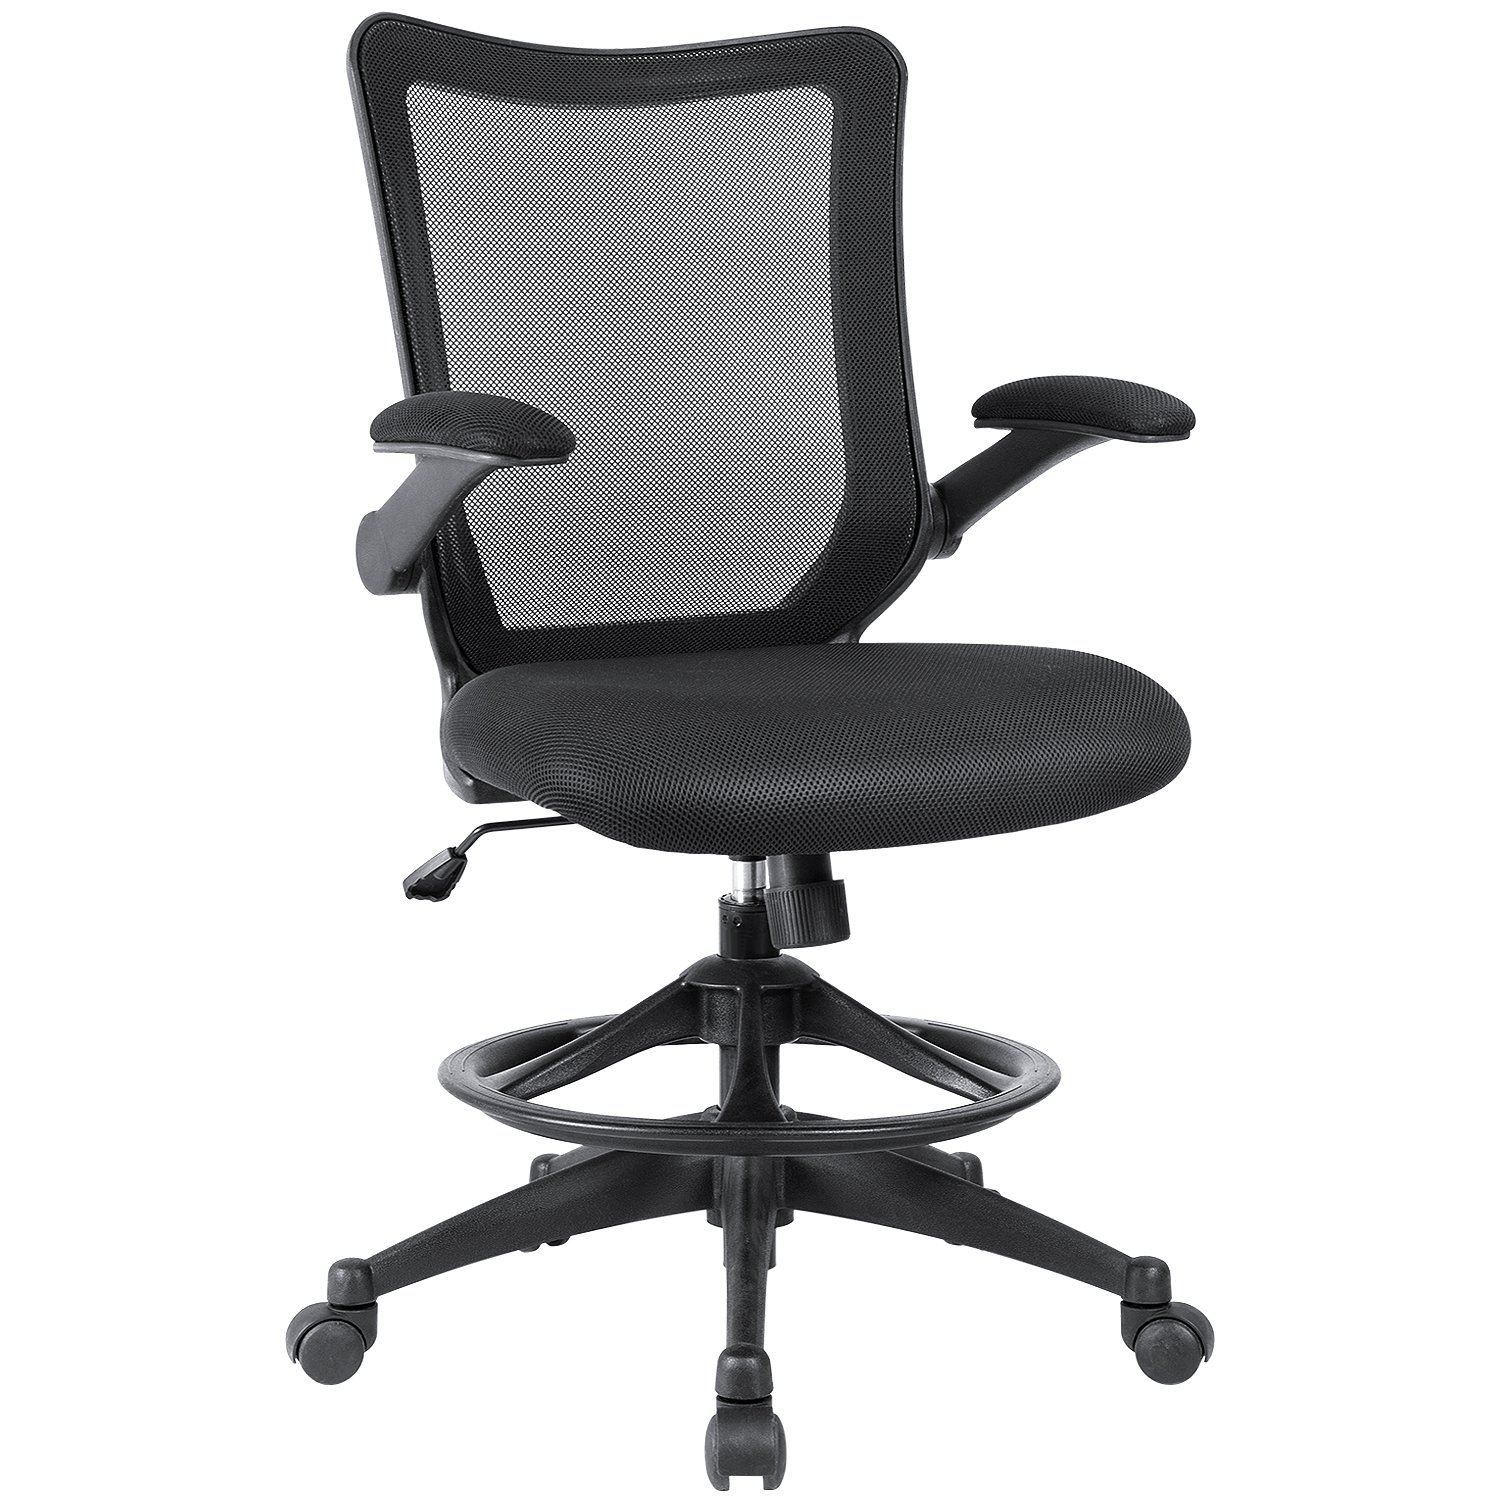 Devoko Office Chair Black Back Tall Drafting Chair Swivel Mesh Desk Chair, Flip up Arms Task Chair with Adjustable Footrest Ring (Black)